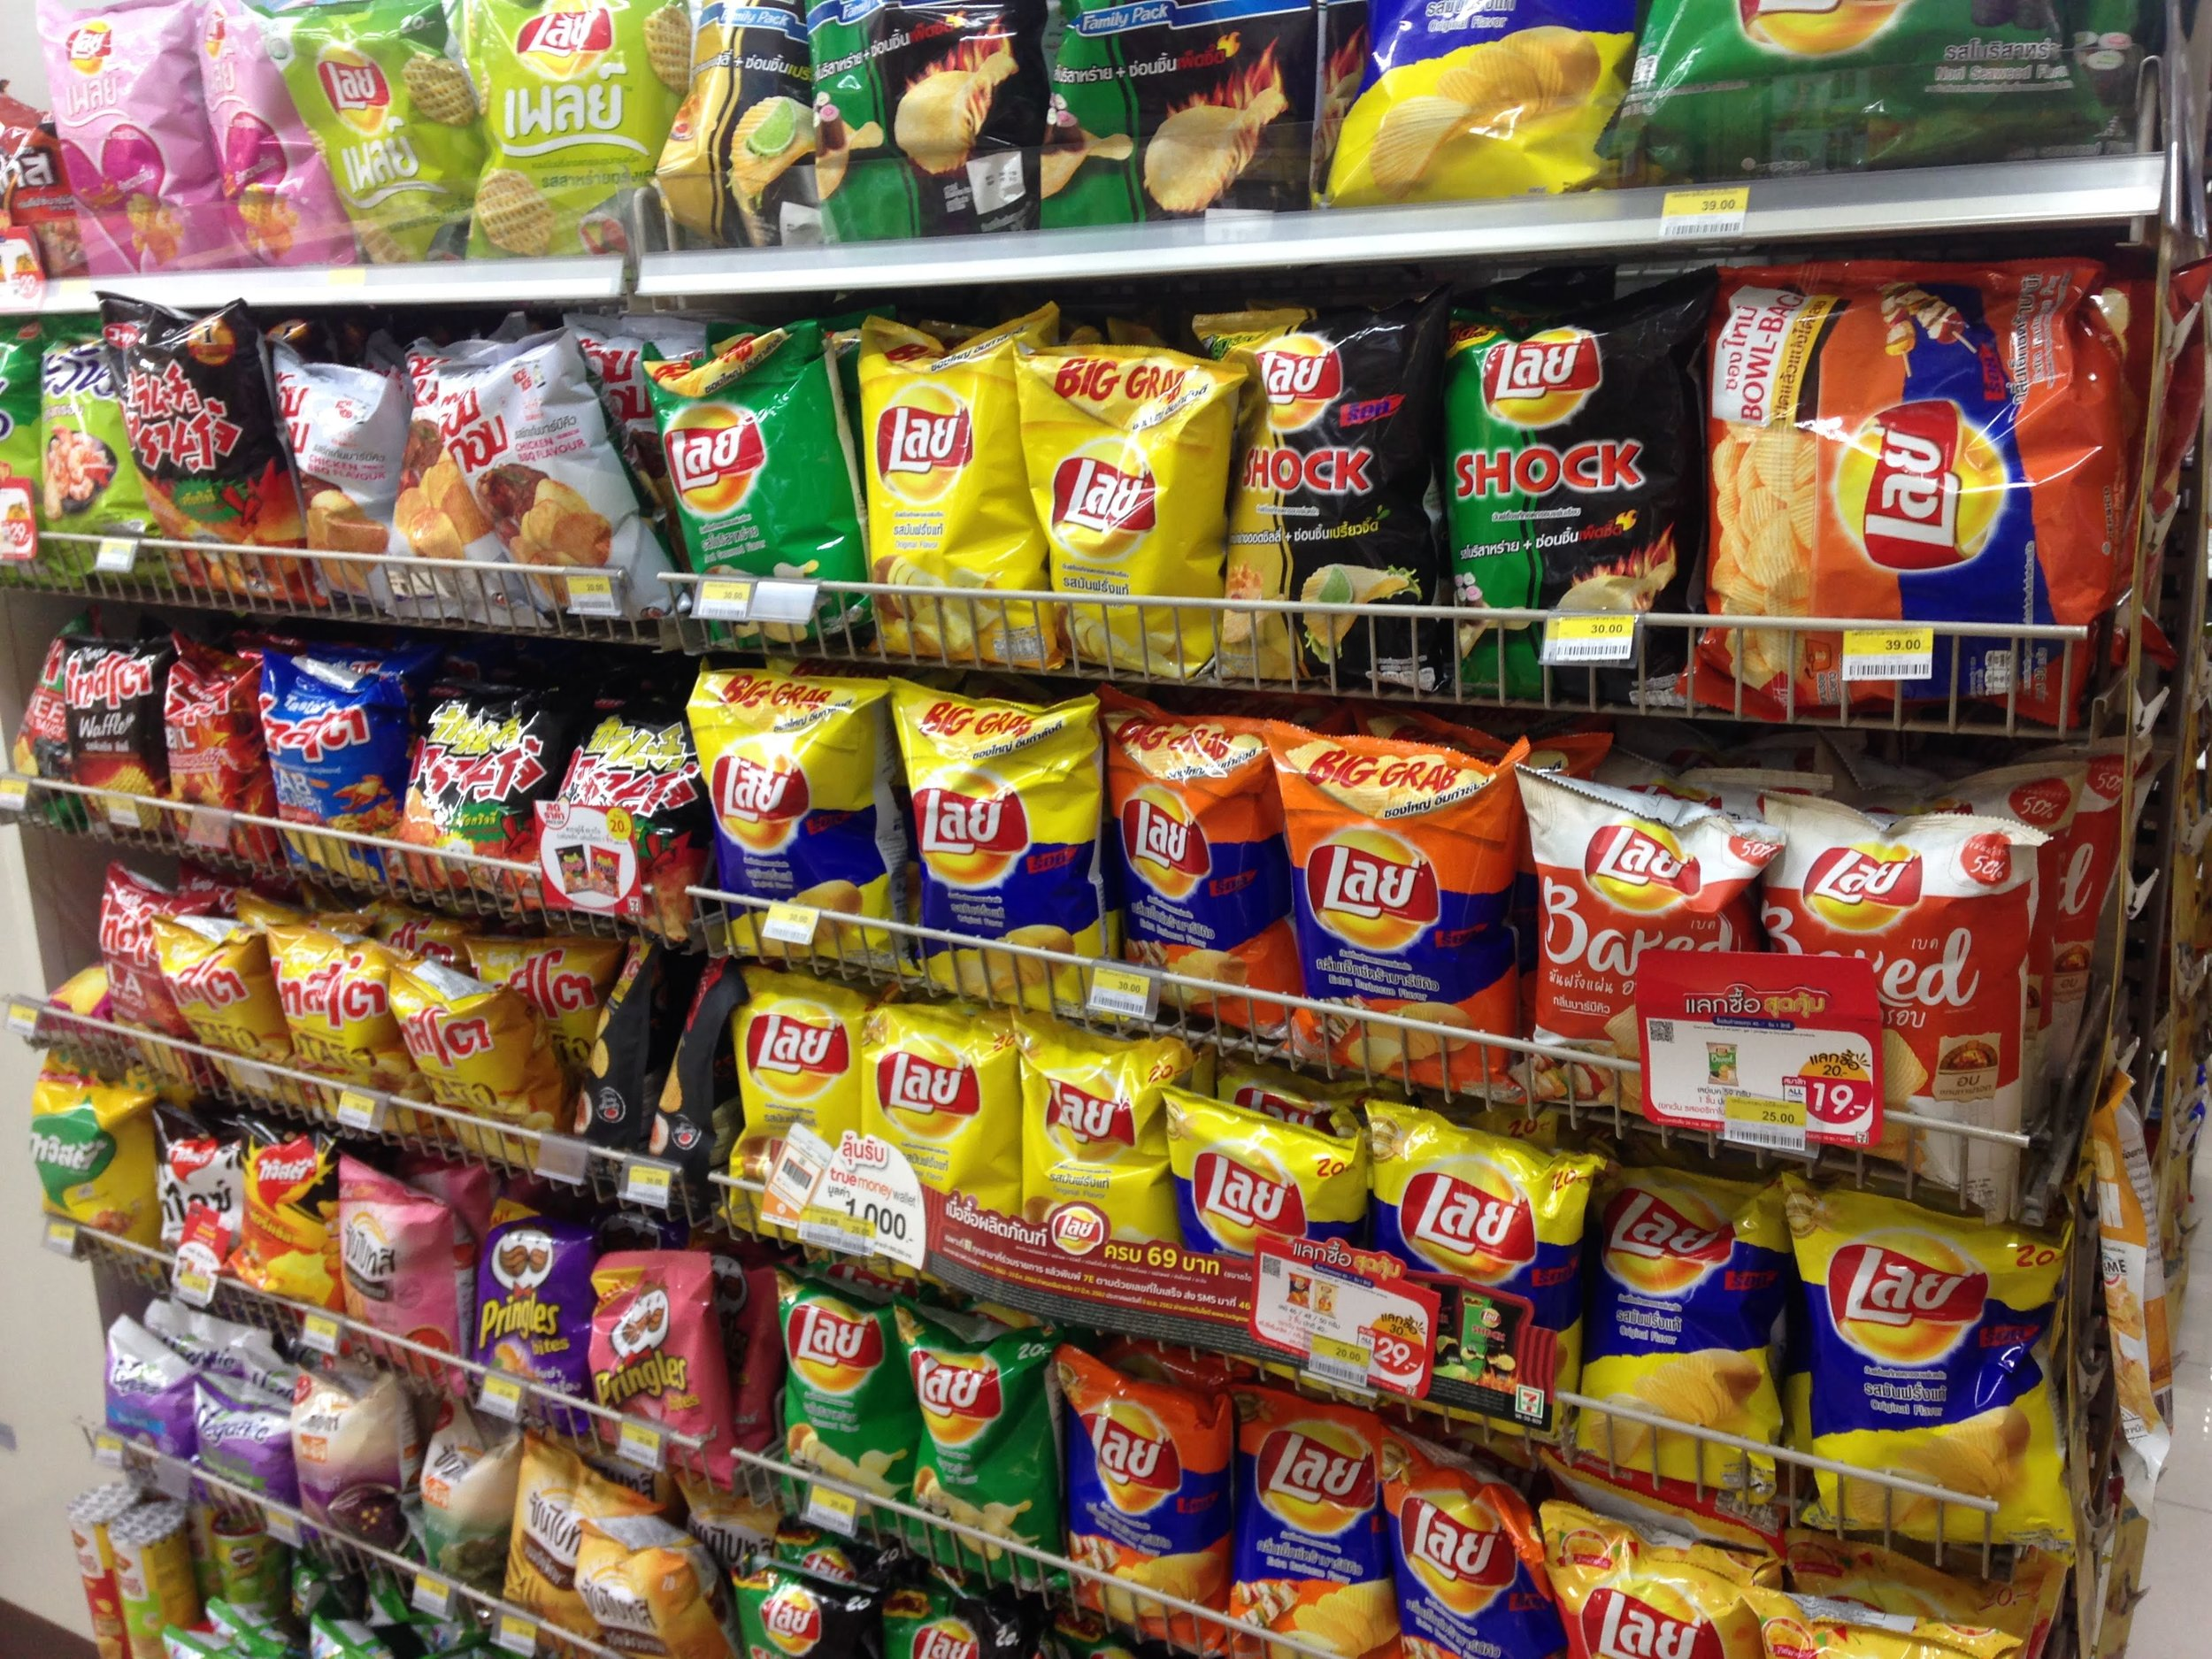 lots of Thai snacks in crazy flavors